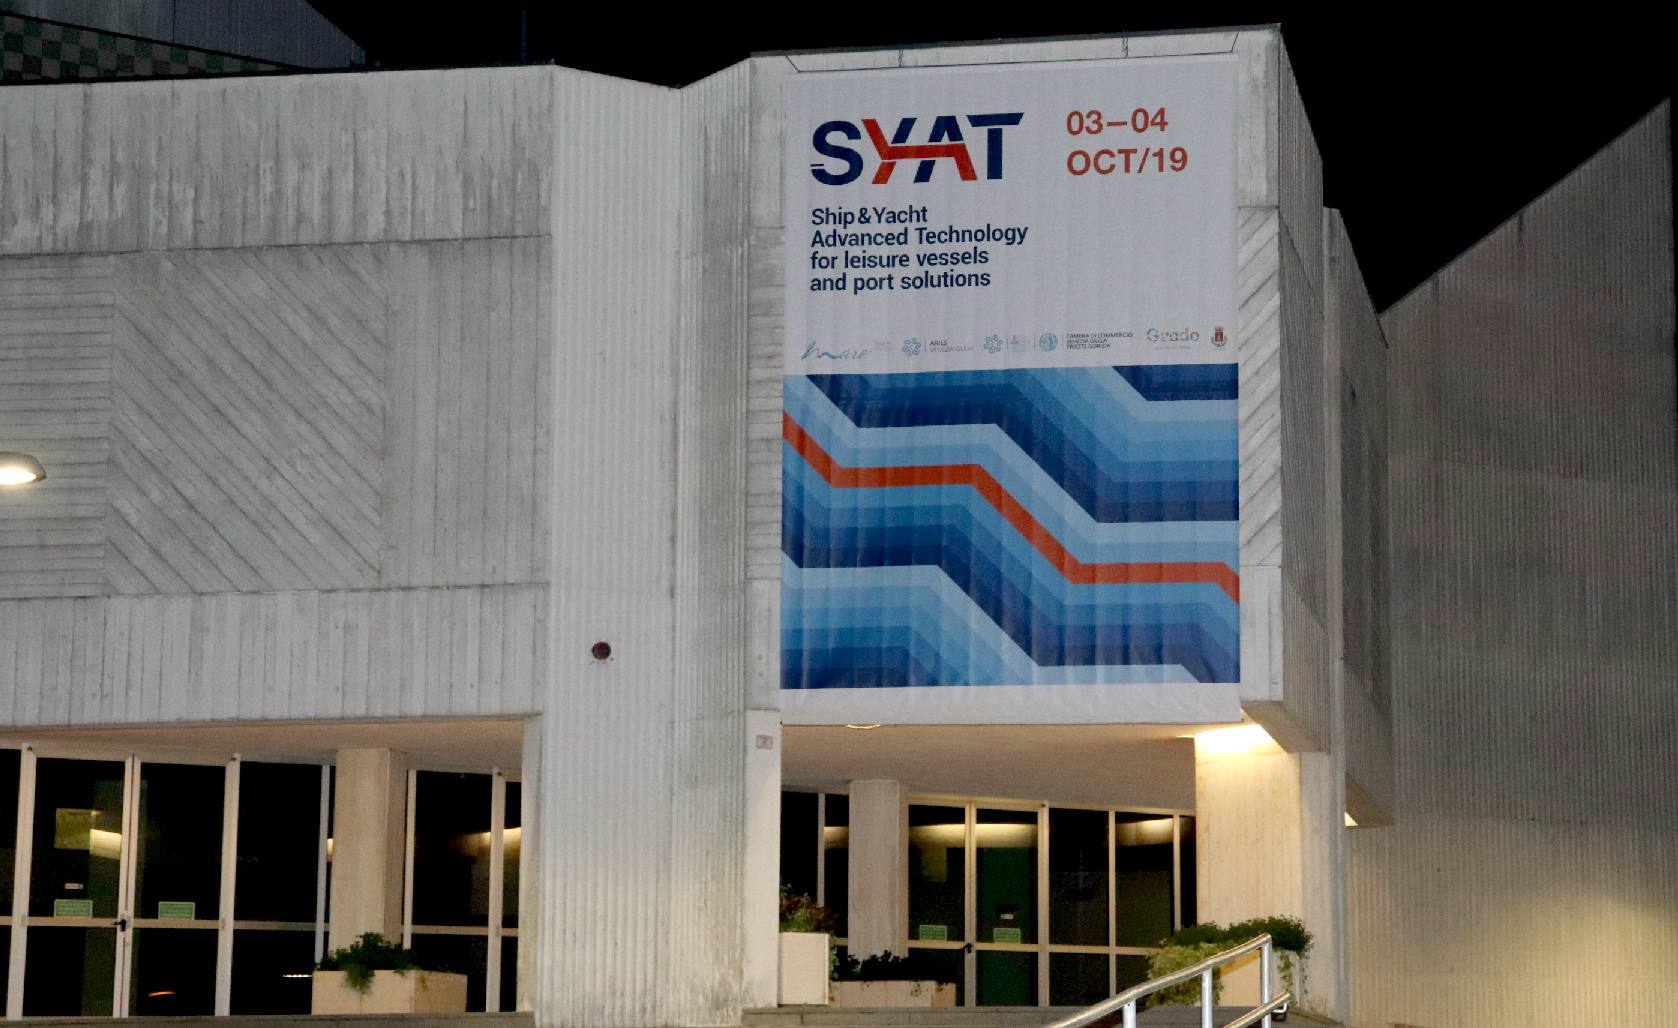 The SYAT conference building in Grado, advanced leisure vessels and port solutions